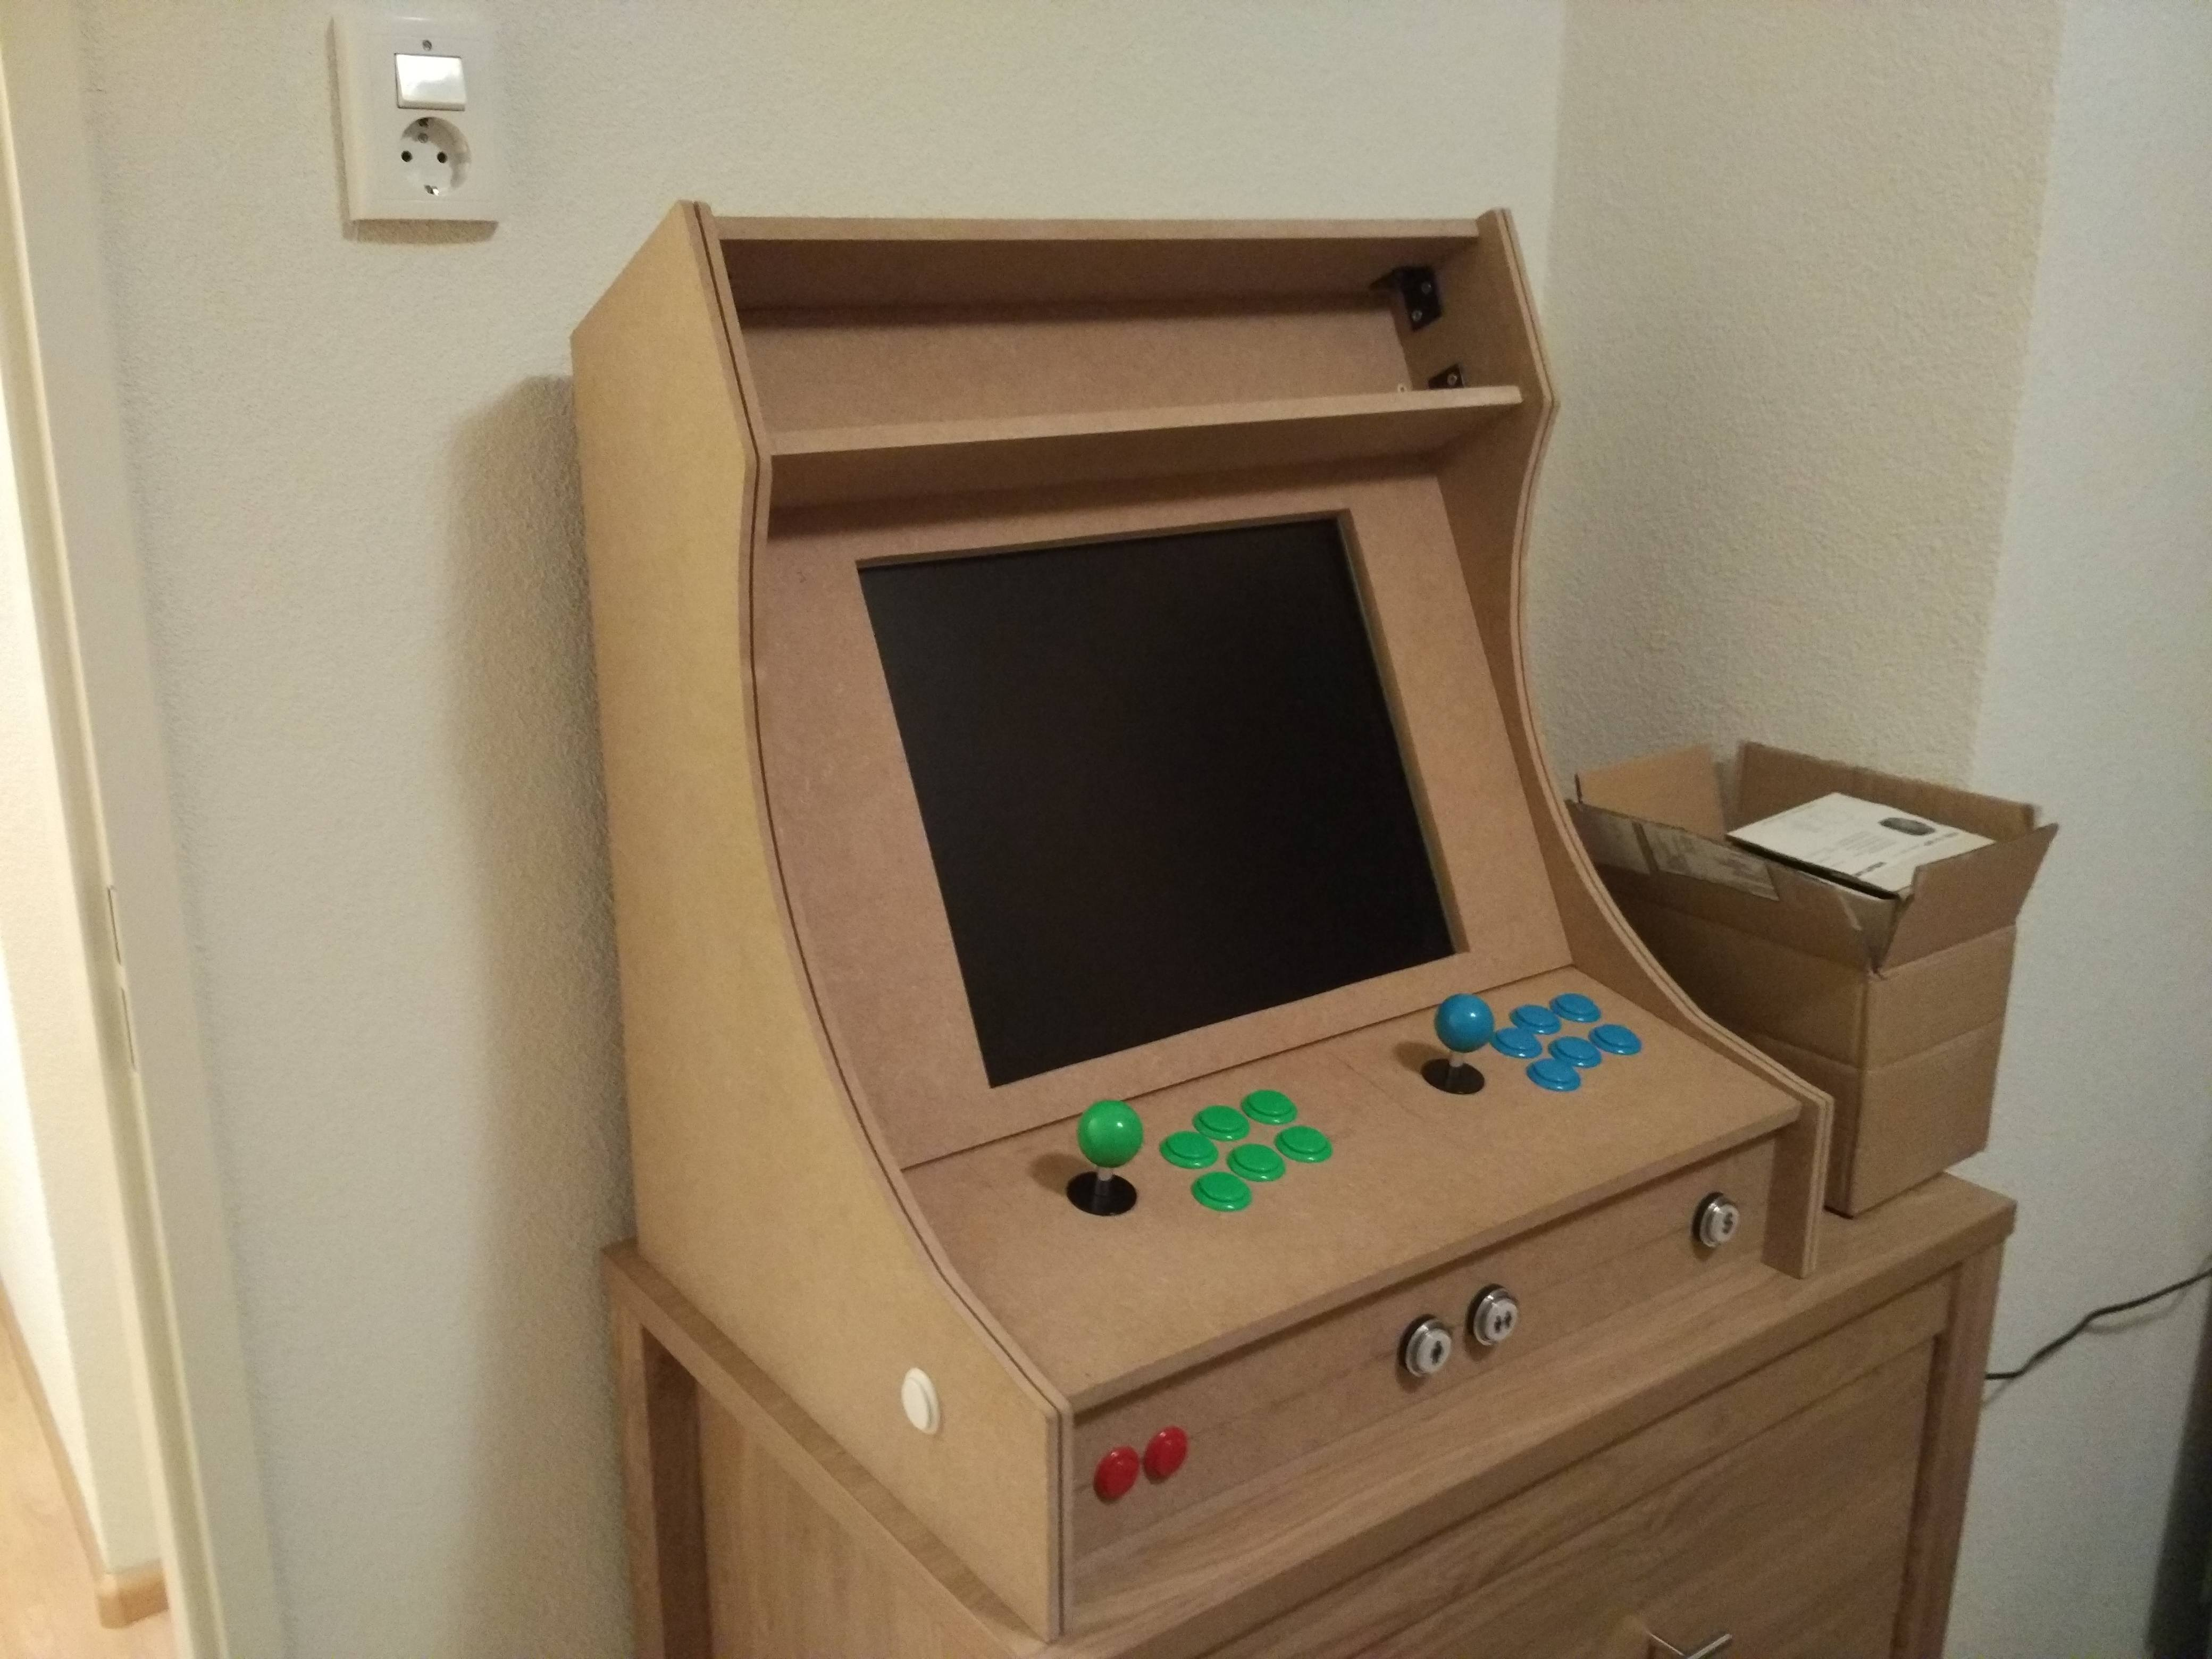 BigBox for low powerd PC in an Arcade Cabinet - Noobs - LaunchBox ...